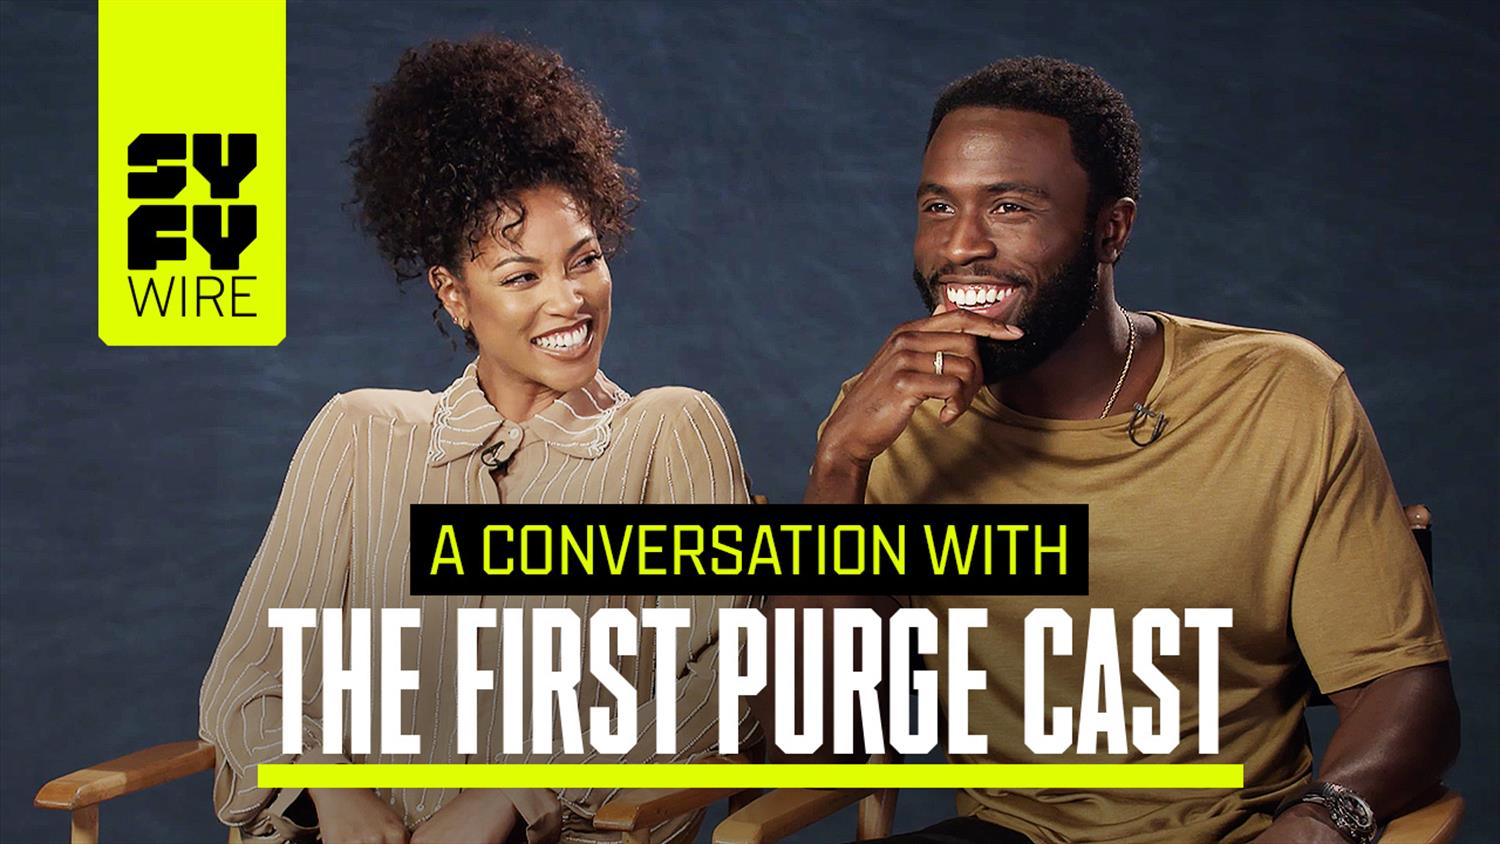 The First Purge Cast: The Horror Comes From The Reality